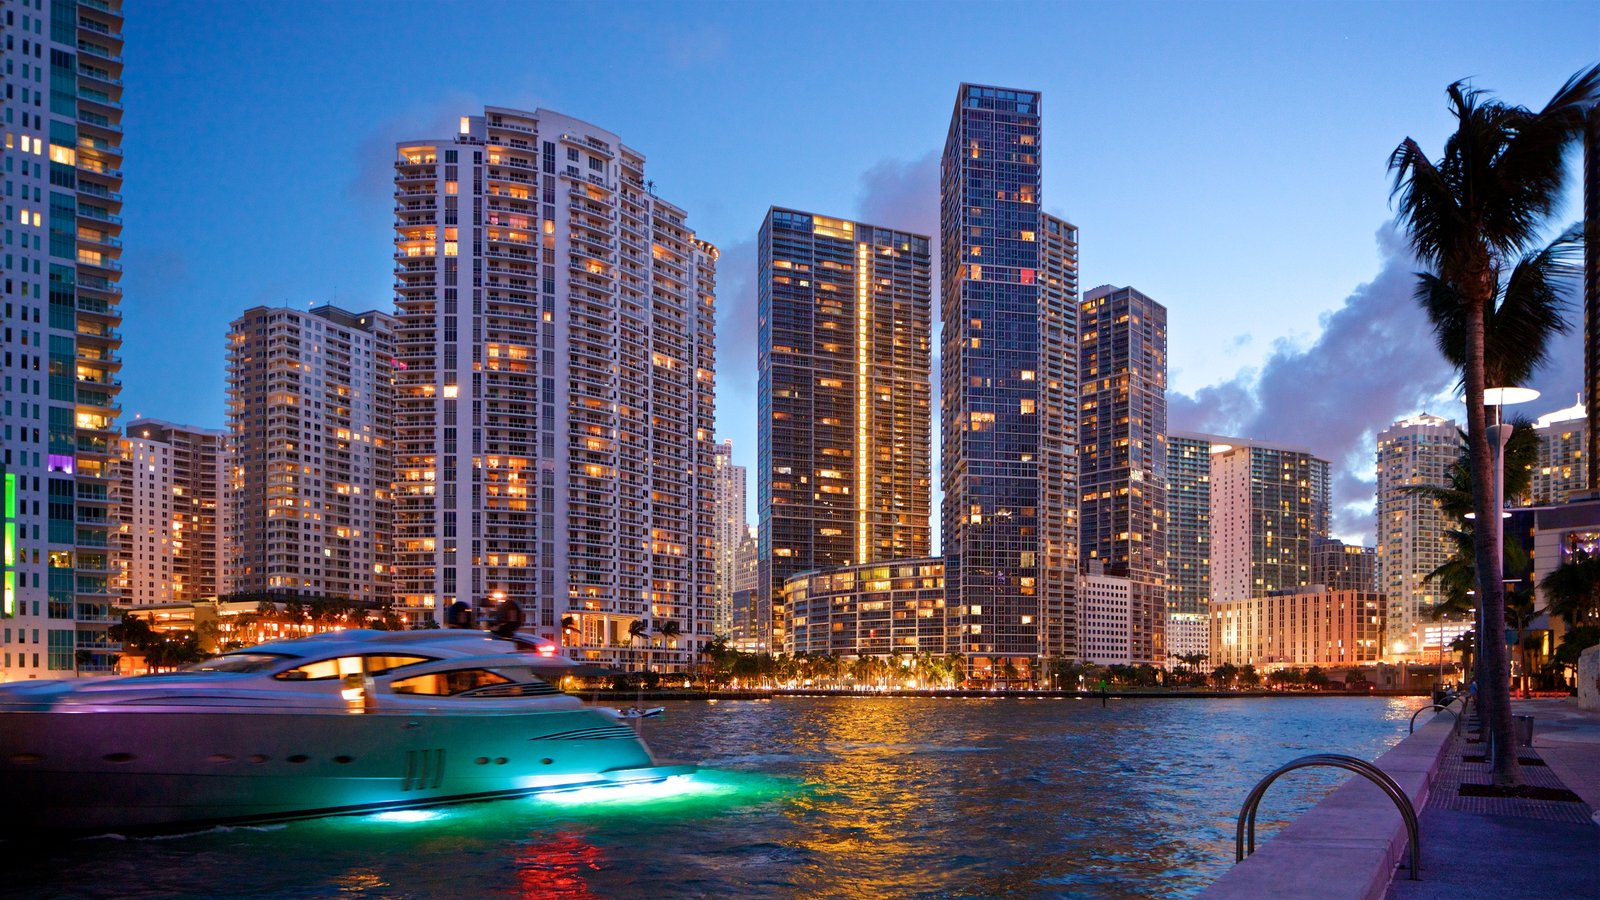 Downtown Miami which includes boating, a river or creek and night scenes